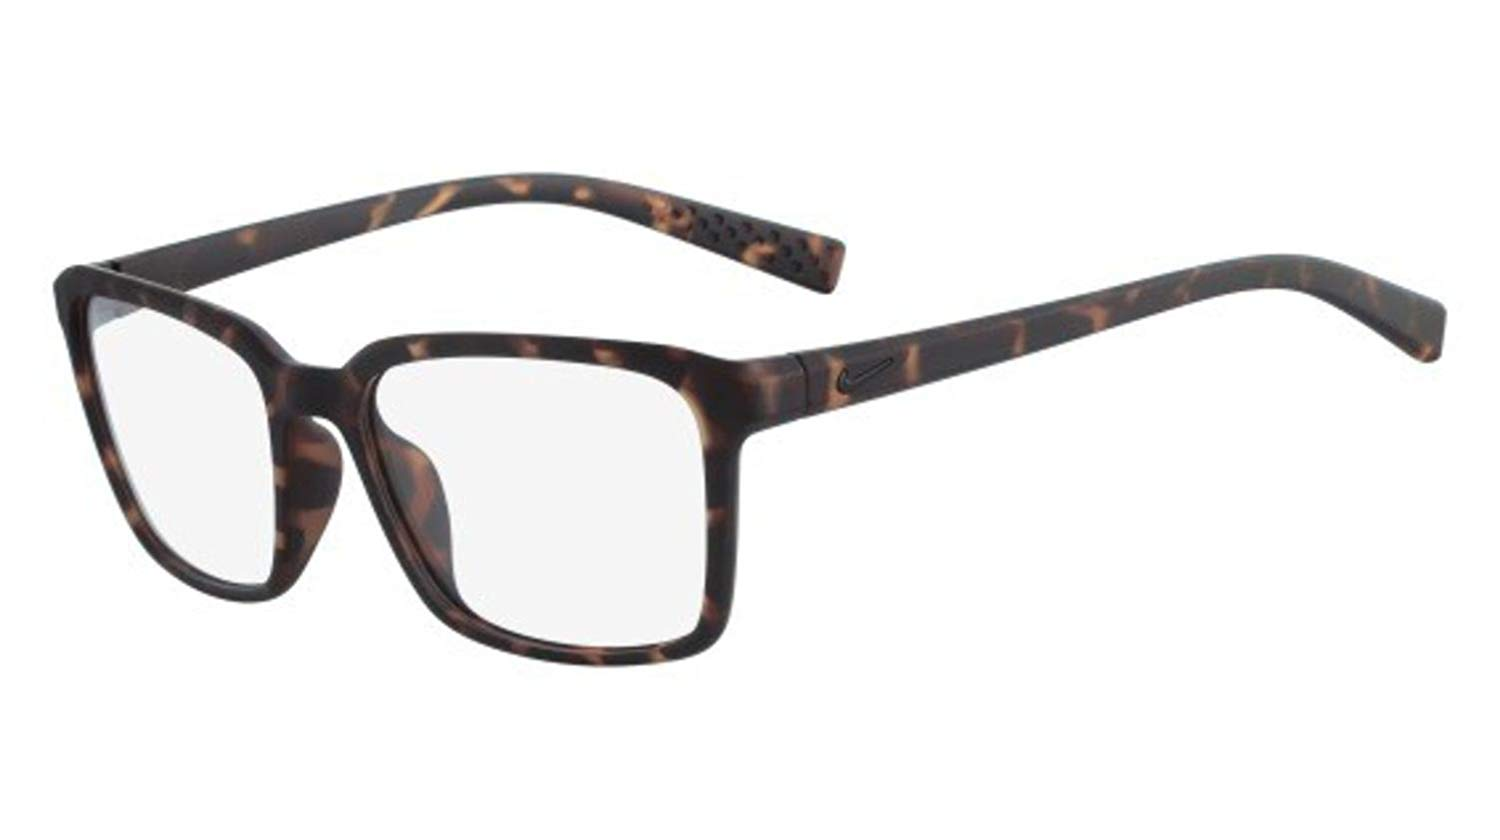 4853b348a06 Get Quotations · Eyeglasses NIKE 7096 215 MATTE TORTOISE BLACK